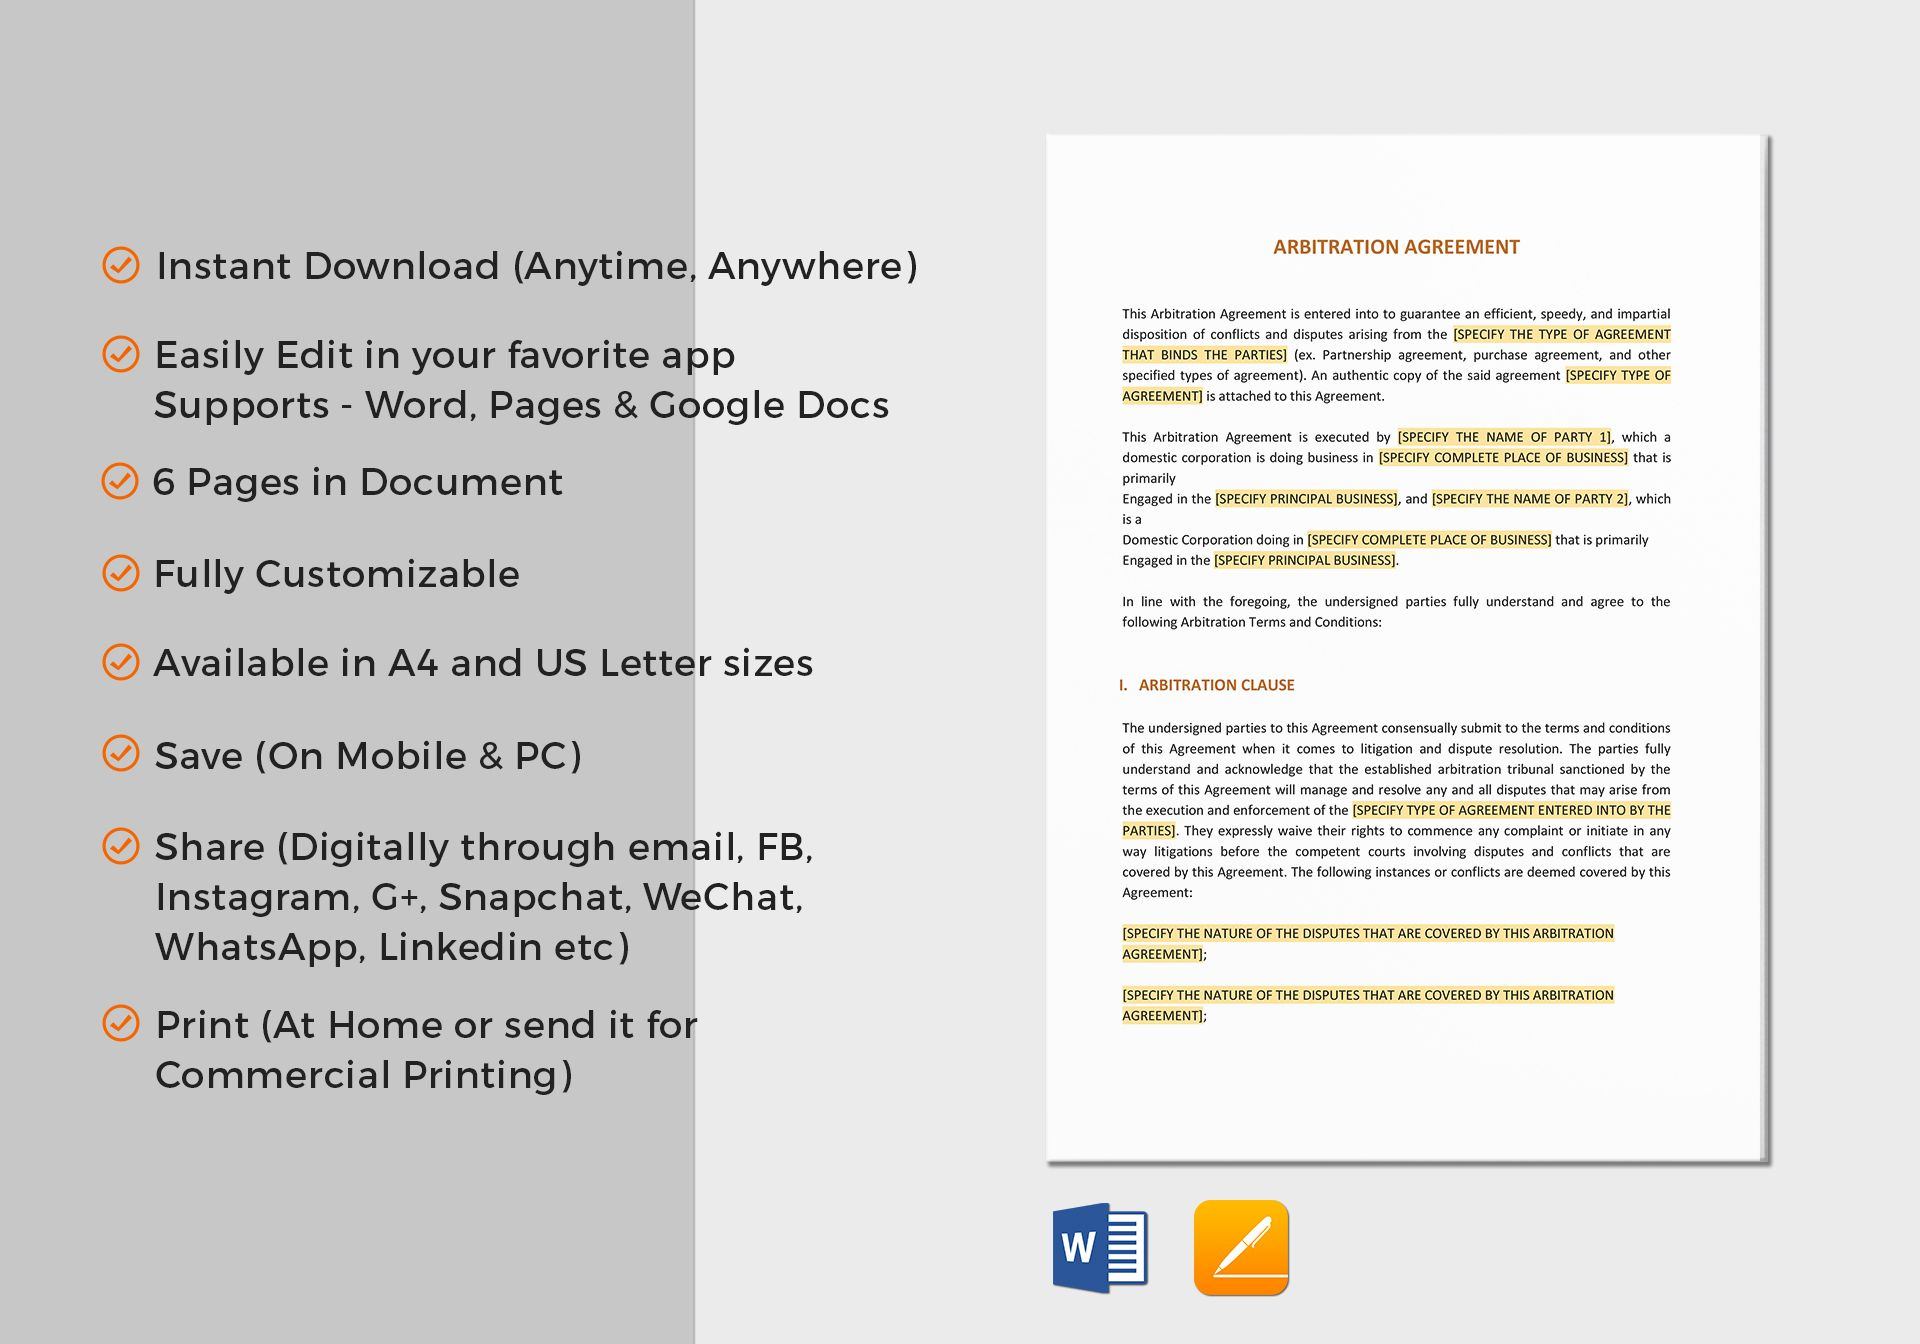 Arbitration Agreement Template in Word, Google Docs, Apple Pages